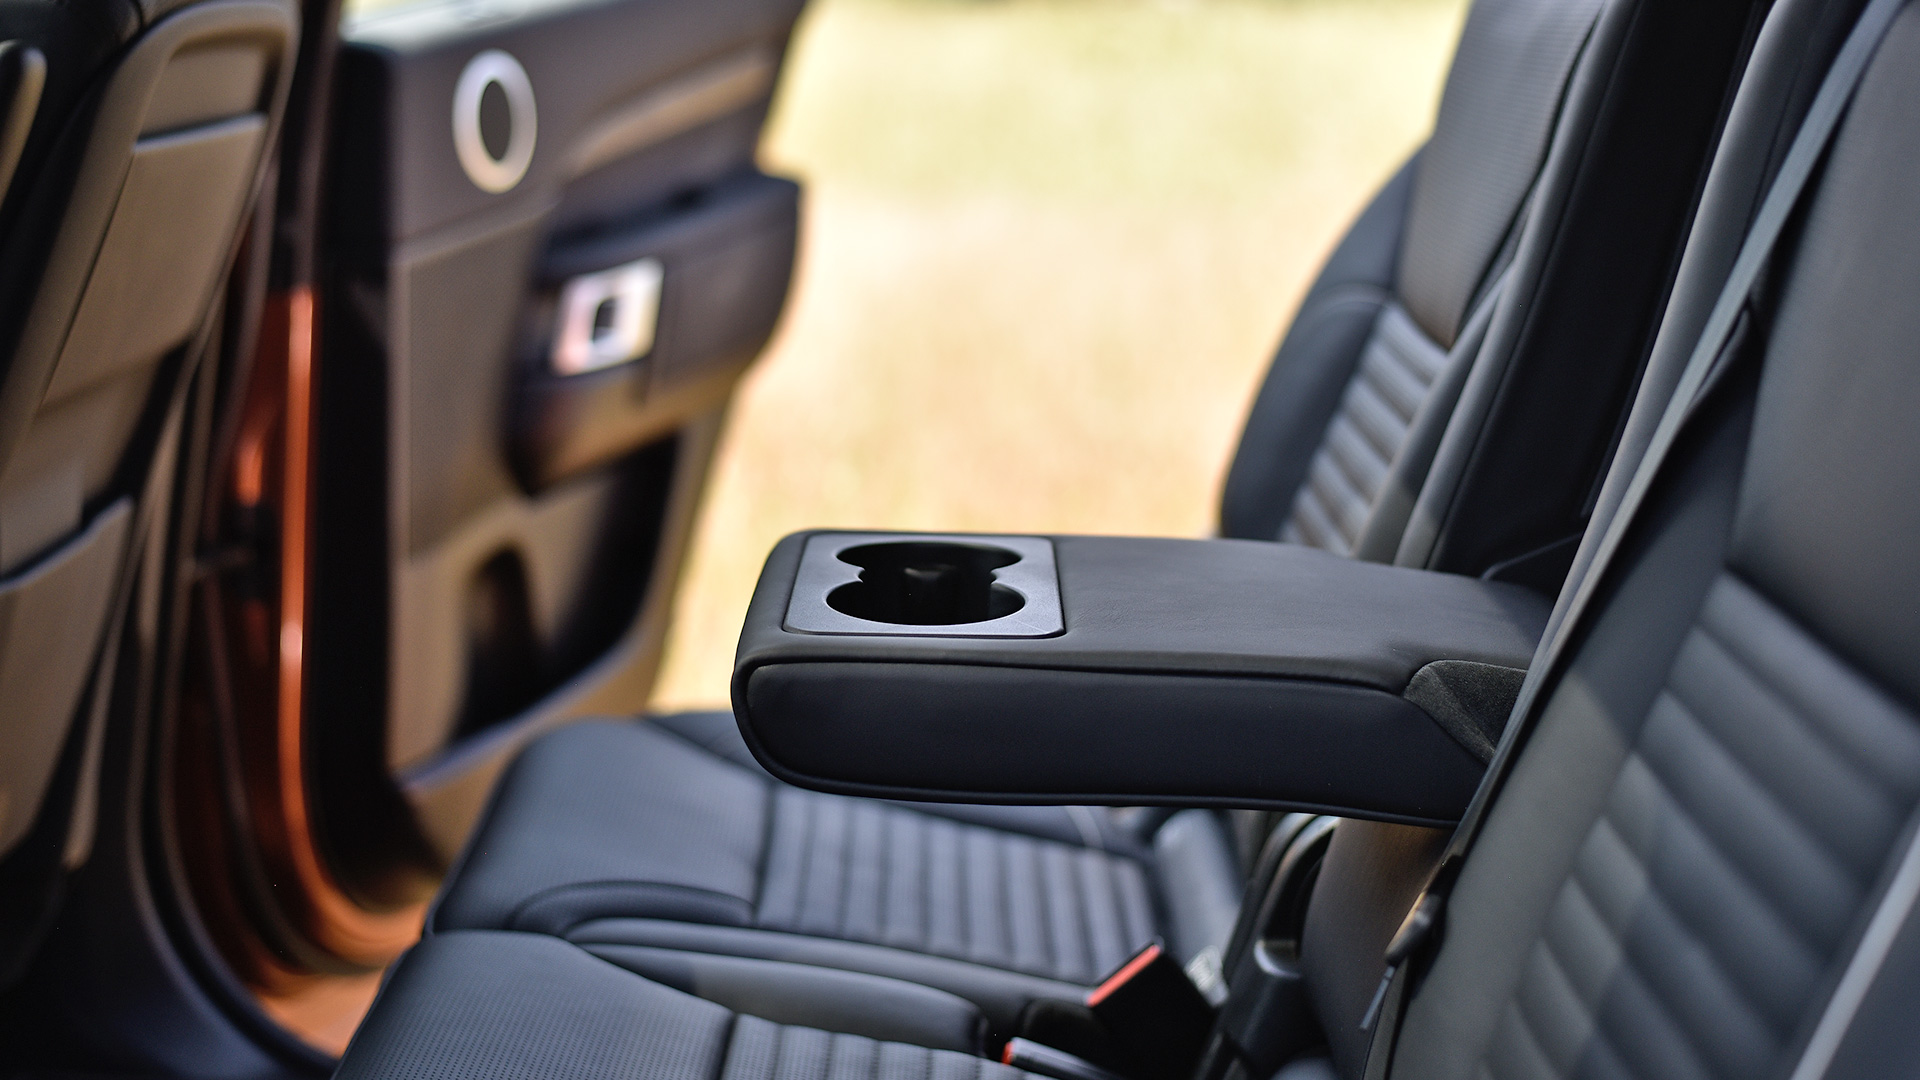 Land rover discovery 2017 diesel first edition interior car photos overdrive for Land rover discovery 2017 interior